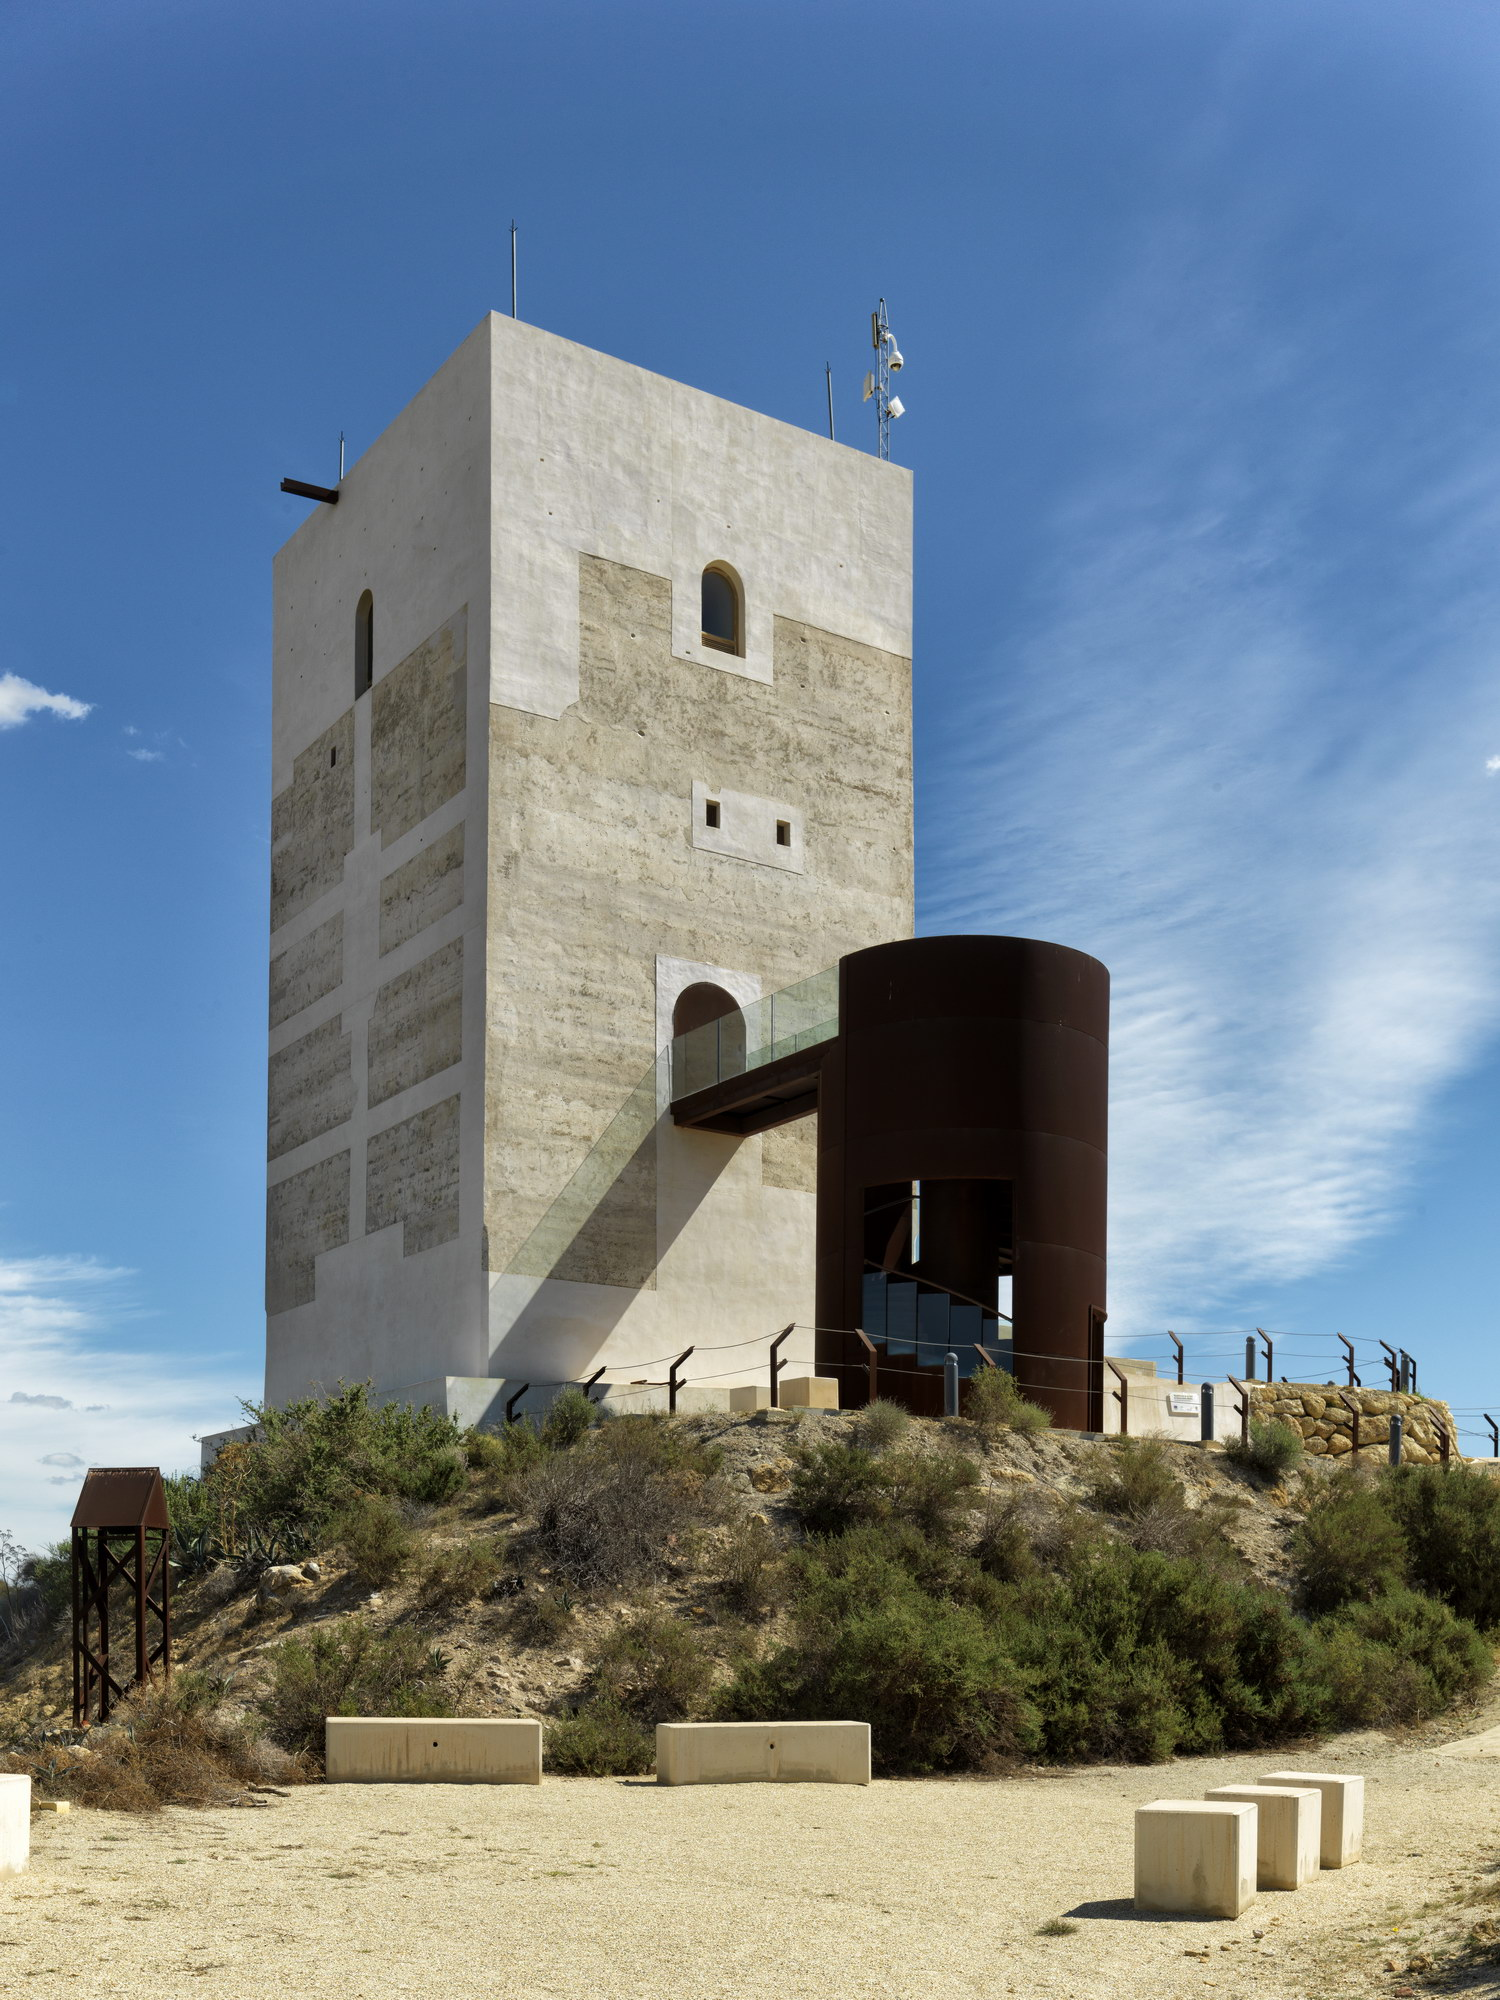 Above, the Tehran brigand below the Nasrid tower in Spain